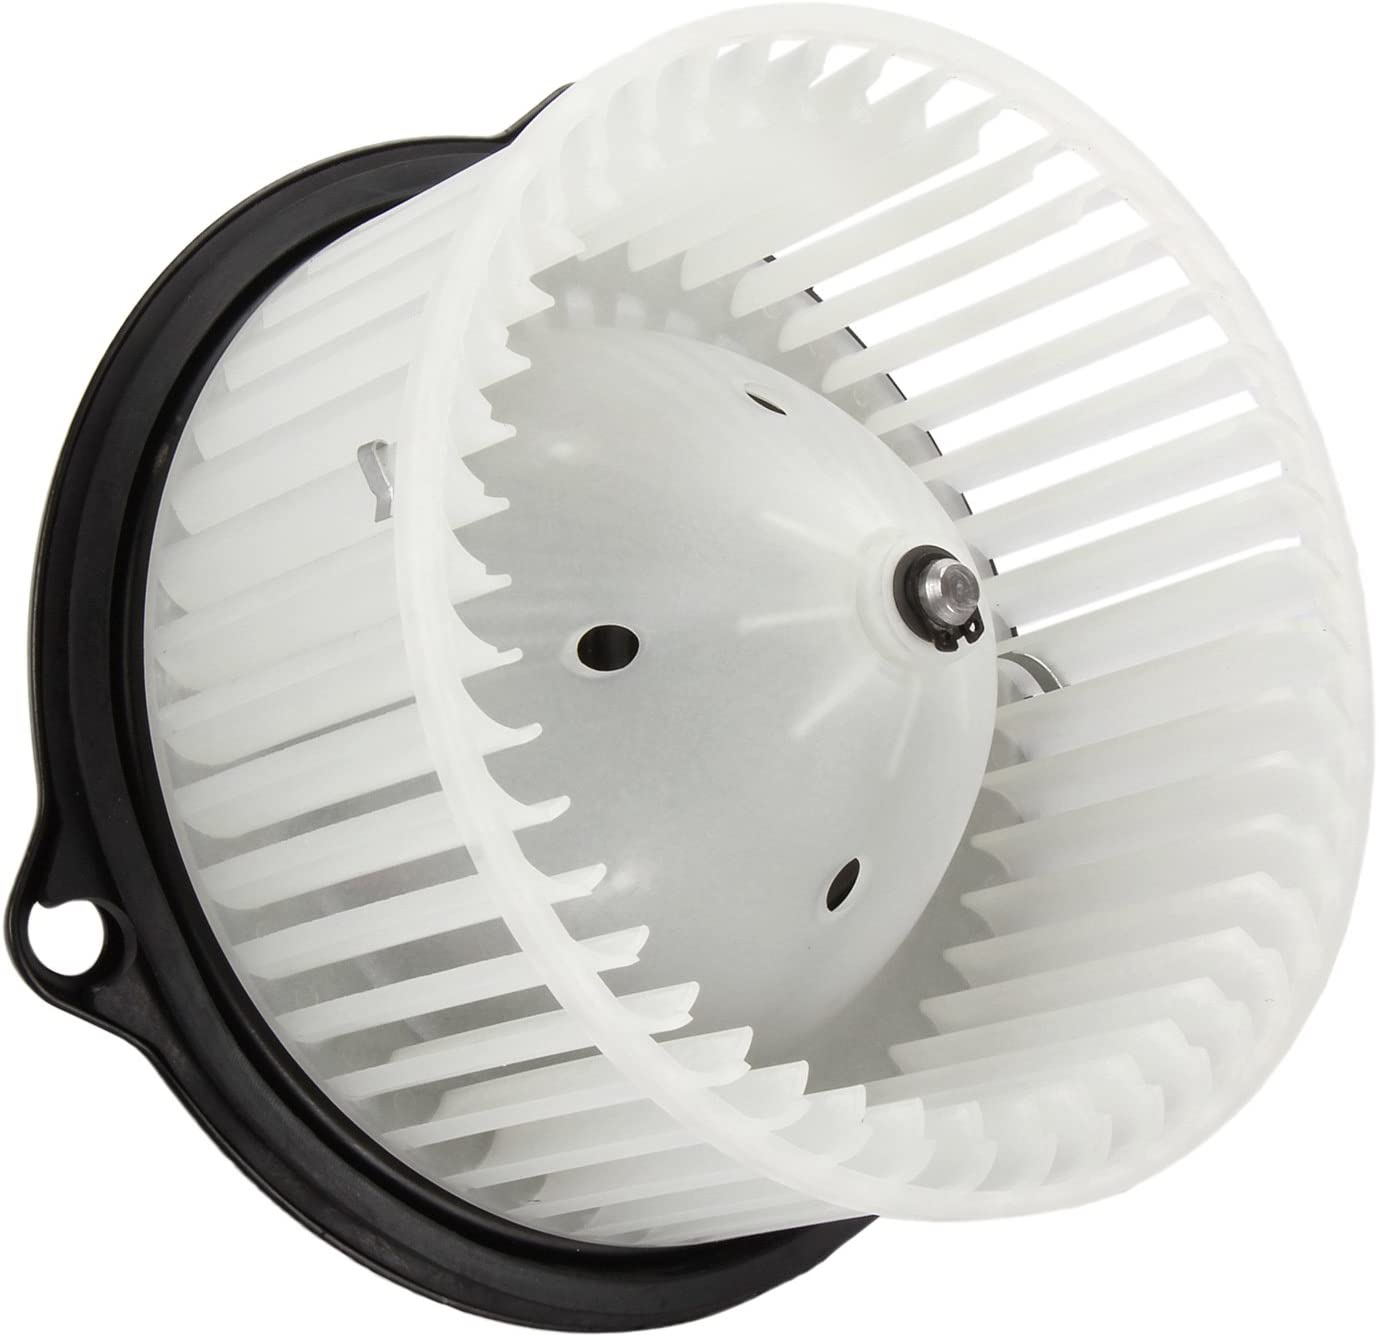 Twilight Garage 700010 AC Heater Blower Motor with Fan Cage for Jeep Grand Cherokee//Dodge Ram